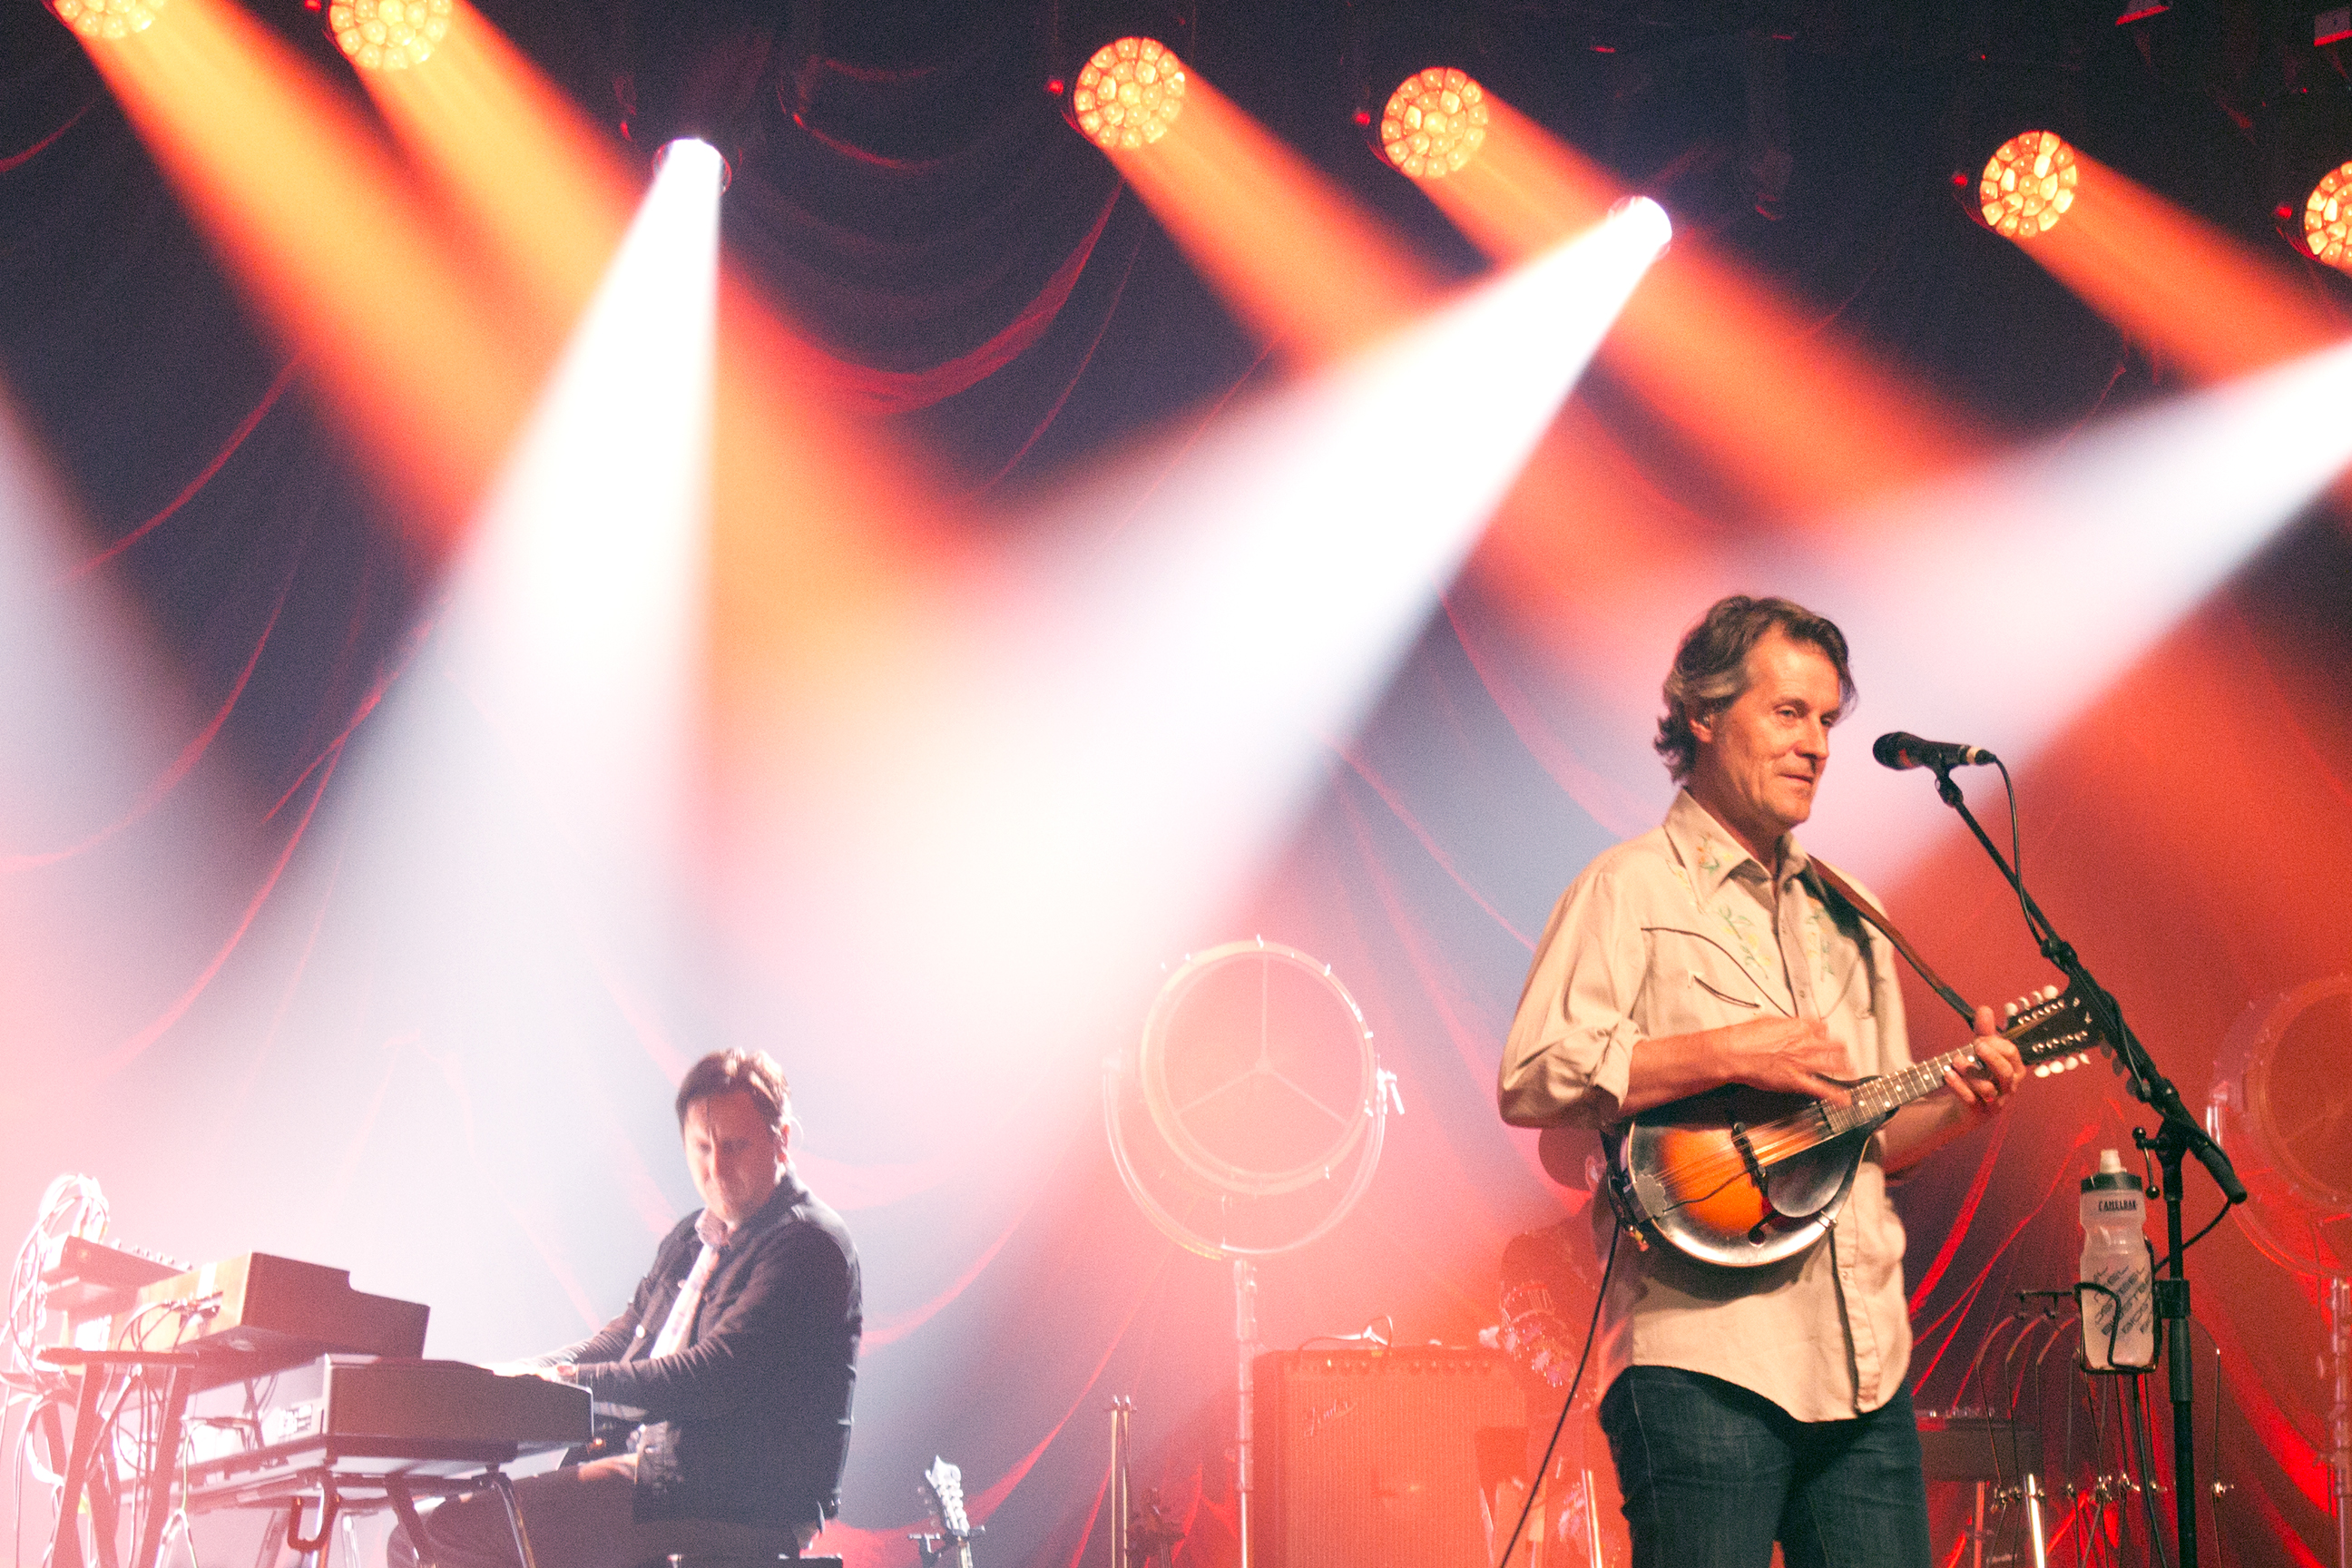 Pre-sale for Blue Rodeo's annual Sunderland show starts April 3